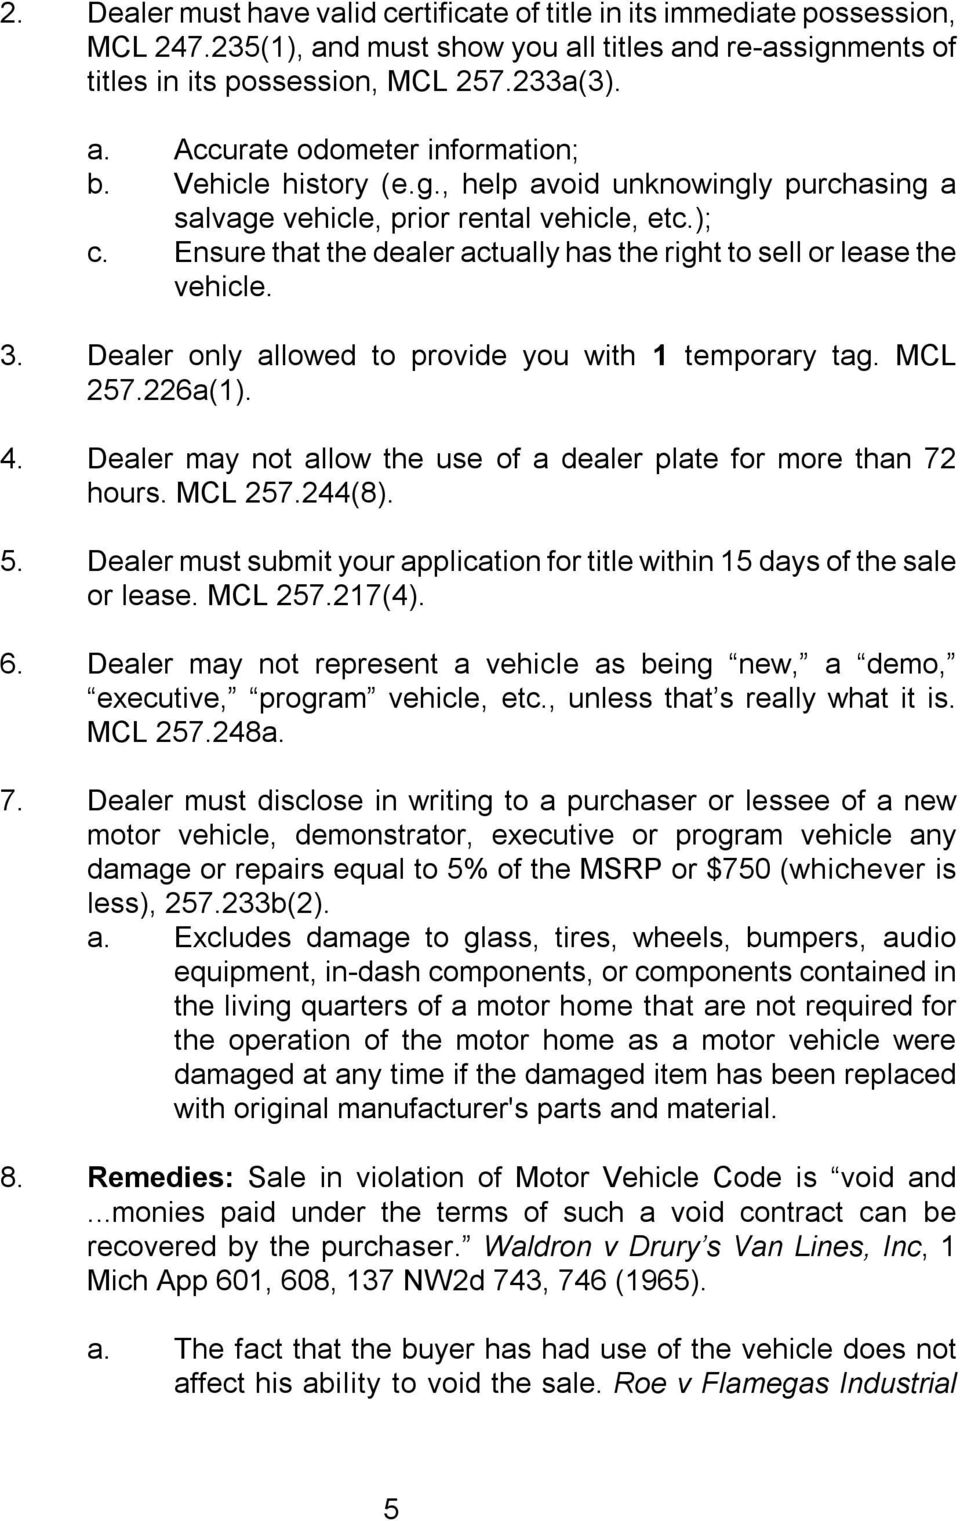 Dealer only allowed to provide you with 1 temporary tag. MCL 257.226a(1). 4. Dealer may not allow the use of a dealer plate for more than 72 hours. MCL 257.244(8). 5.